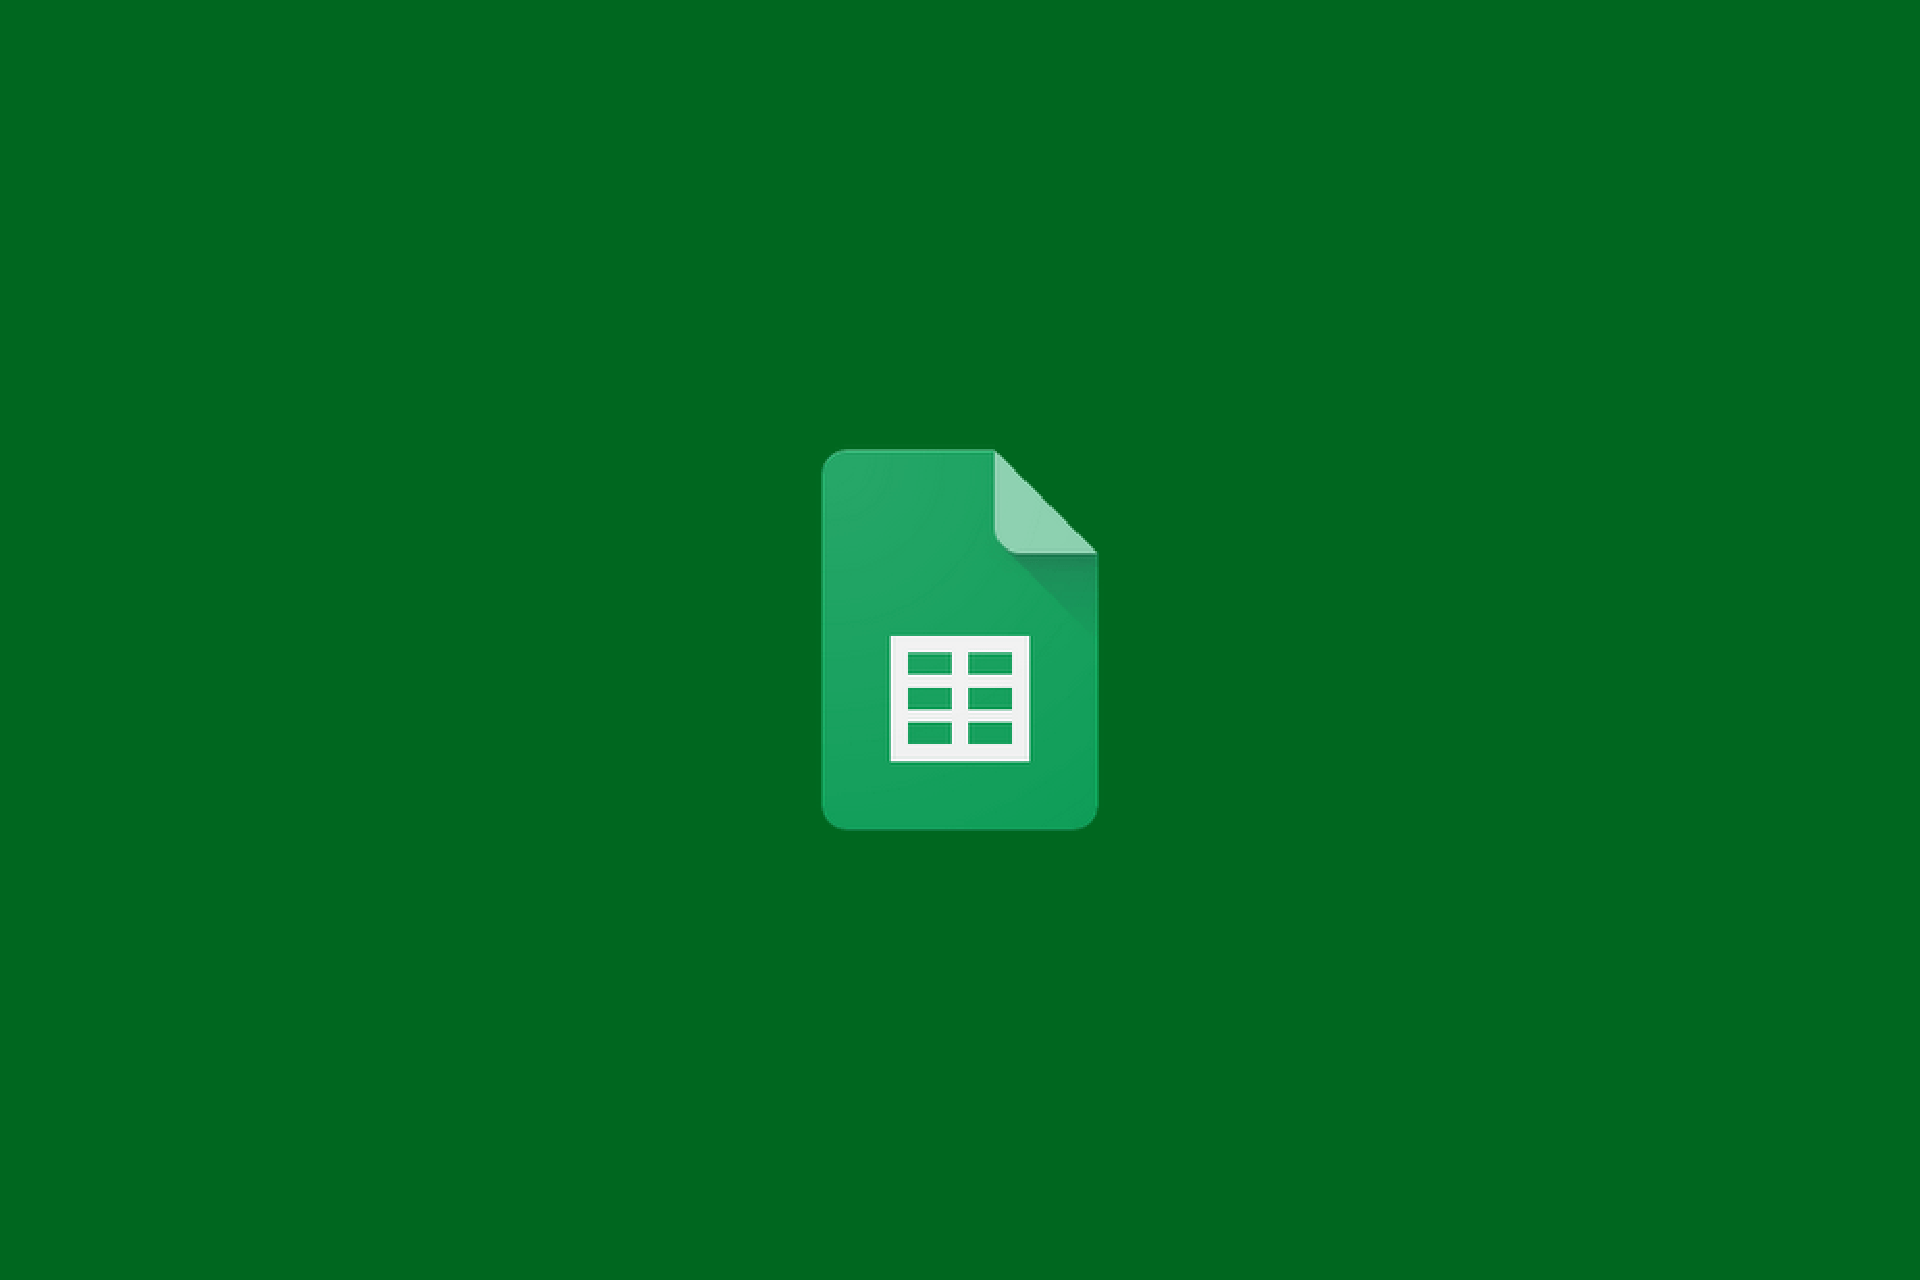 Google brings Cleanup suggestions and Column Stats features in Google Sheets